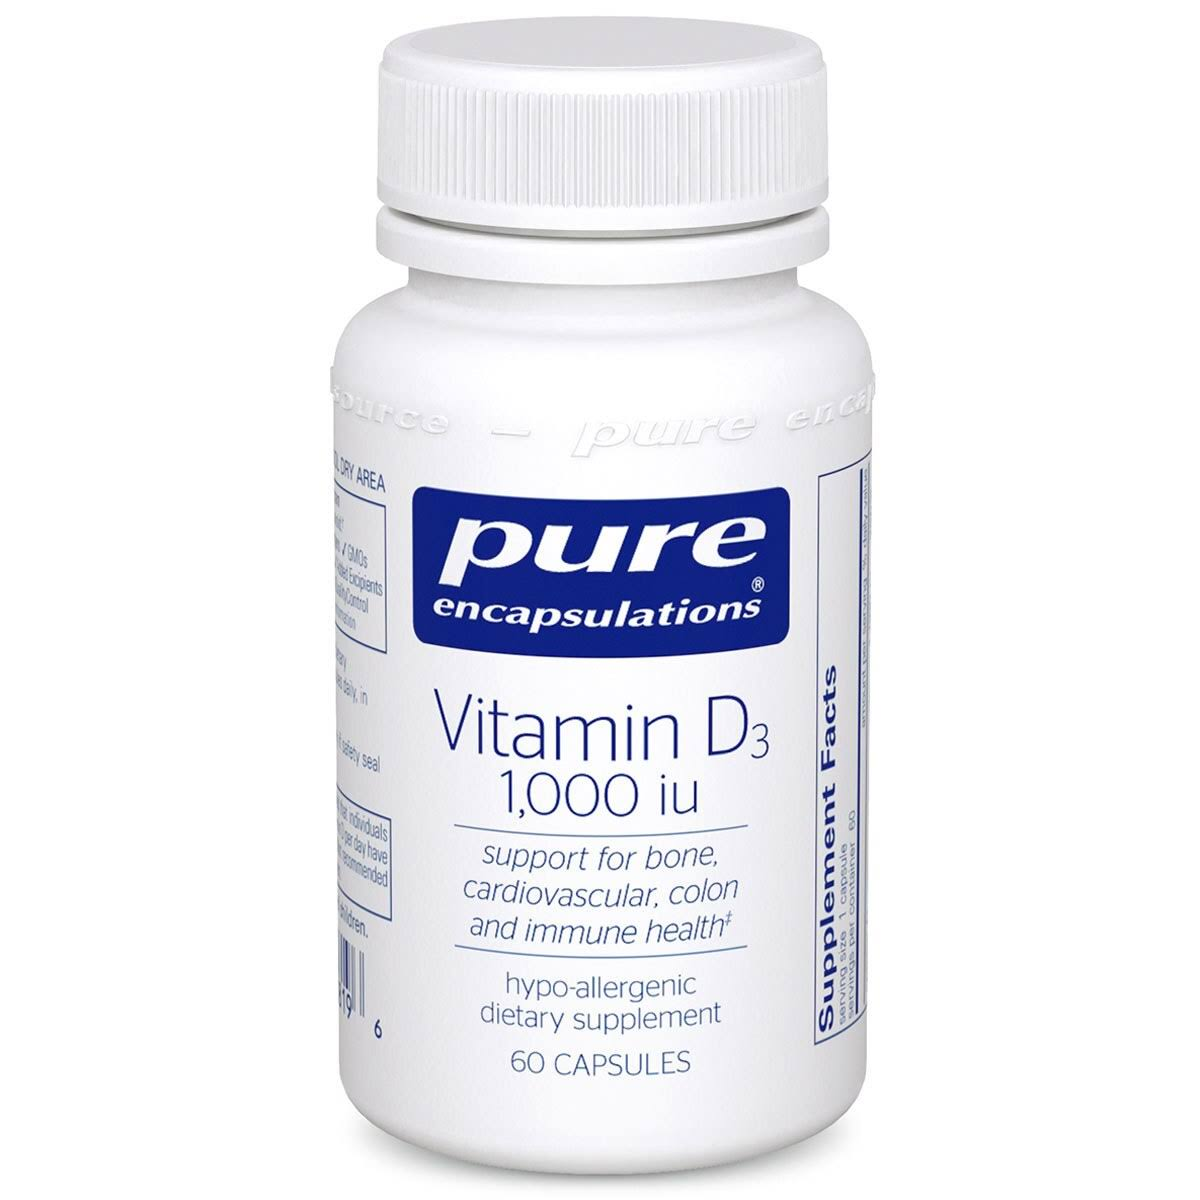 Pure Encapsulations Vitamin D3 1000 IU Supplement - 60 Capsules